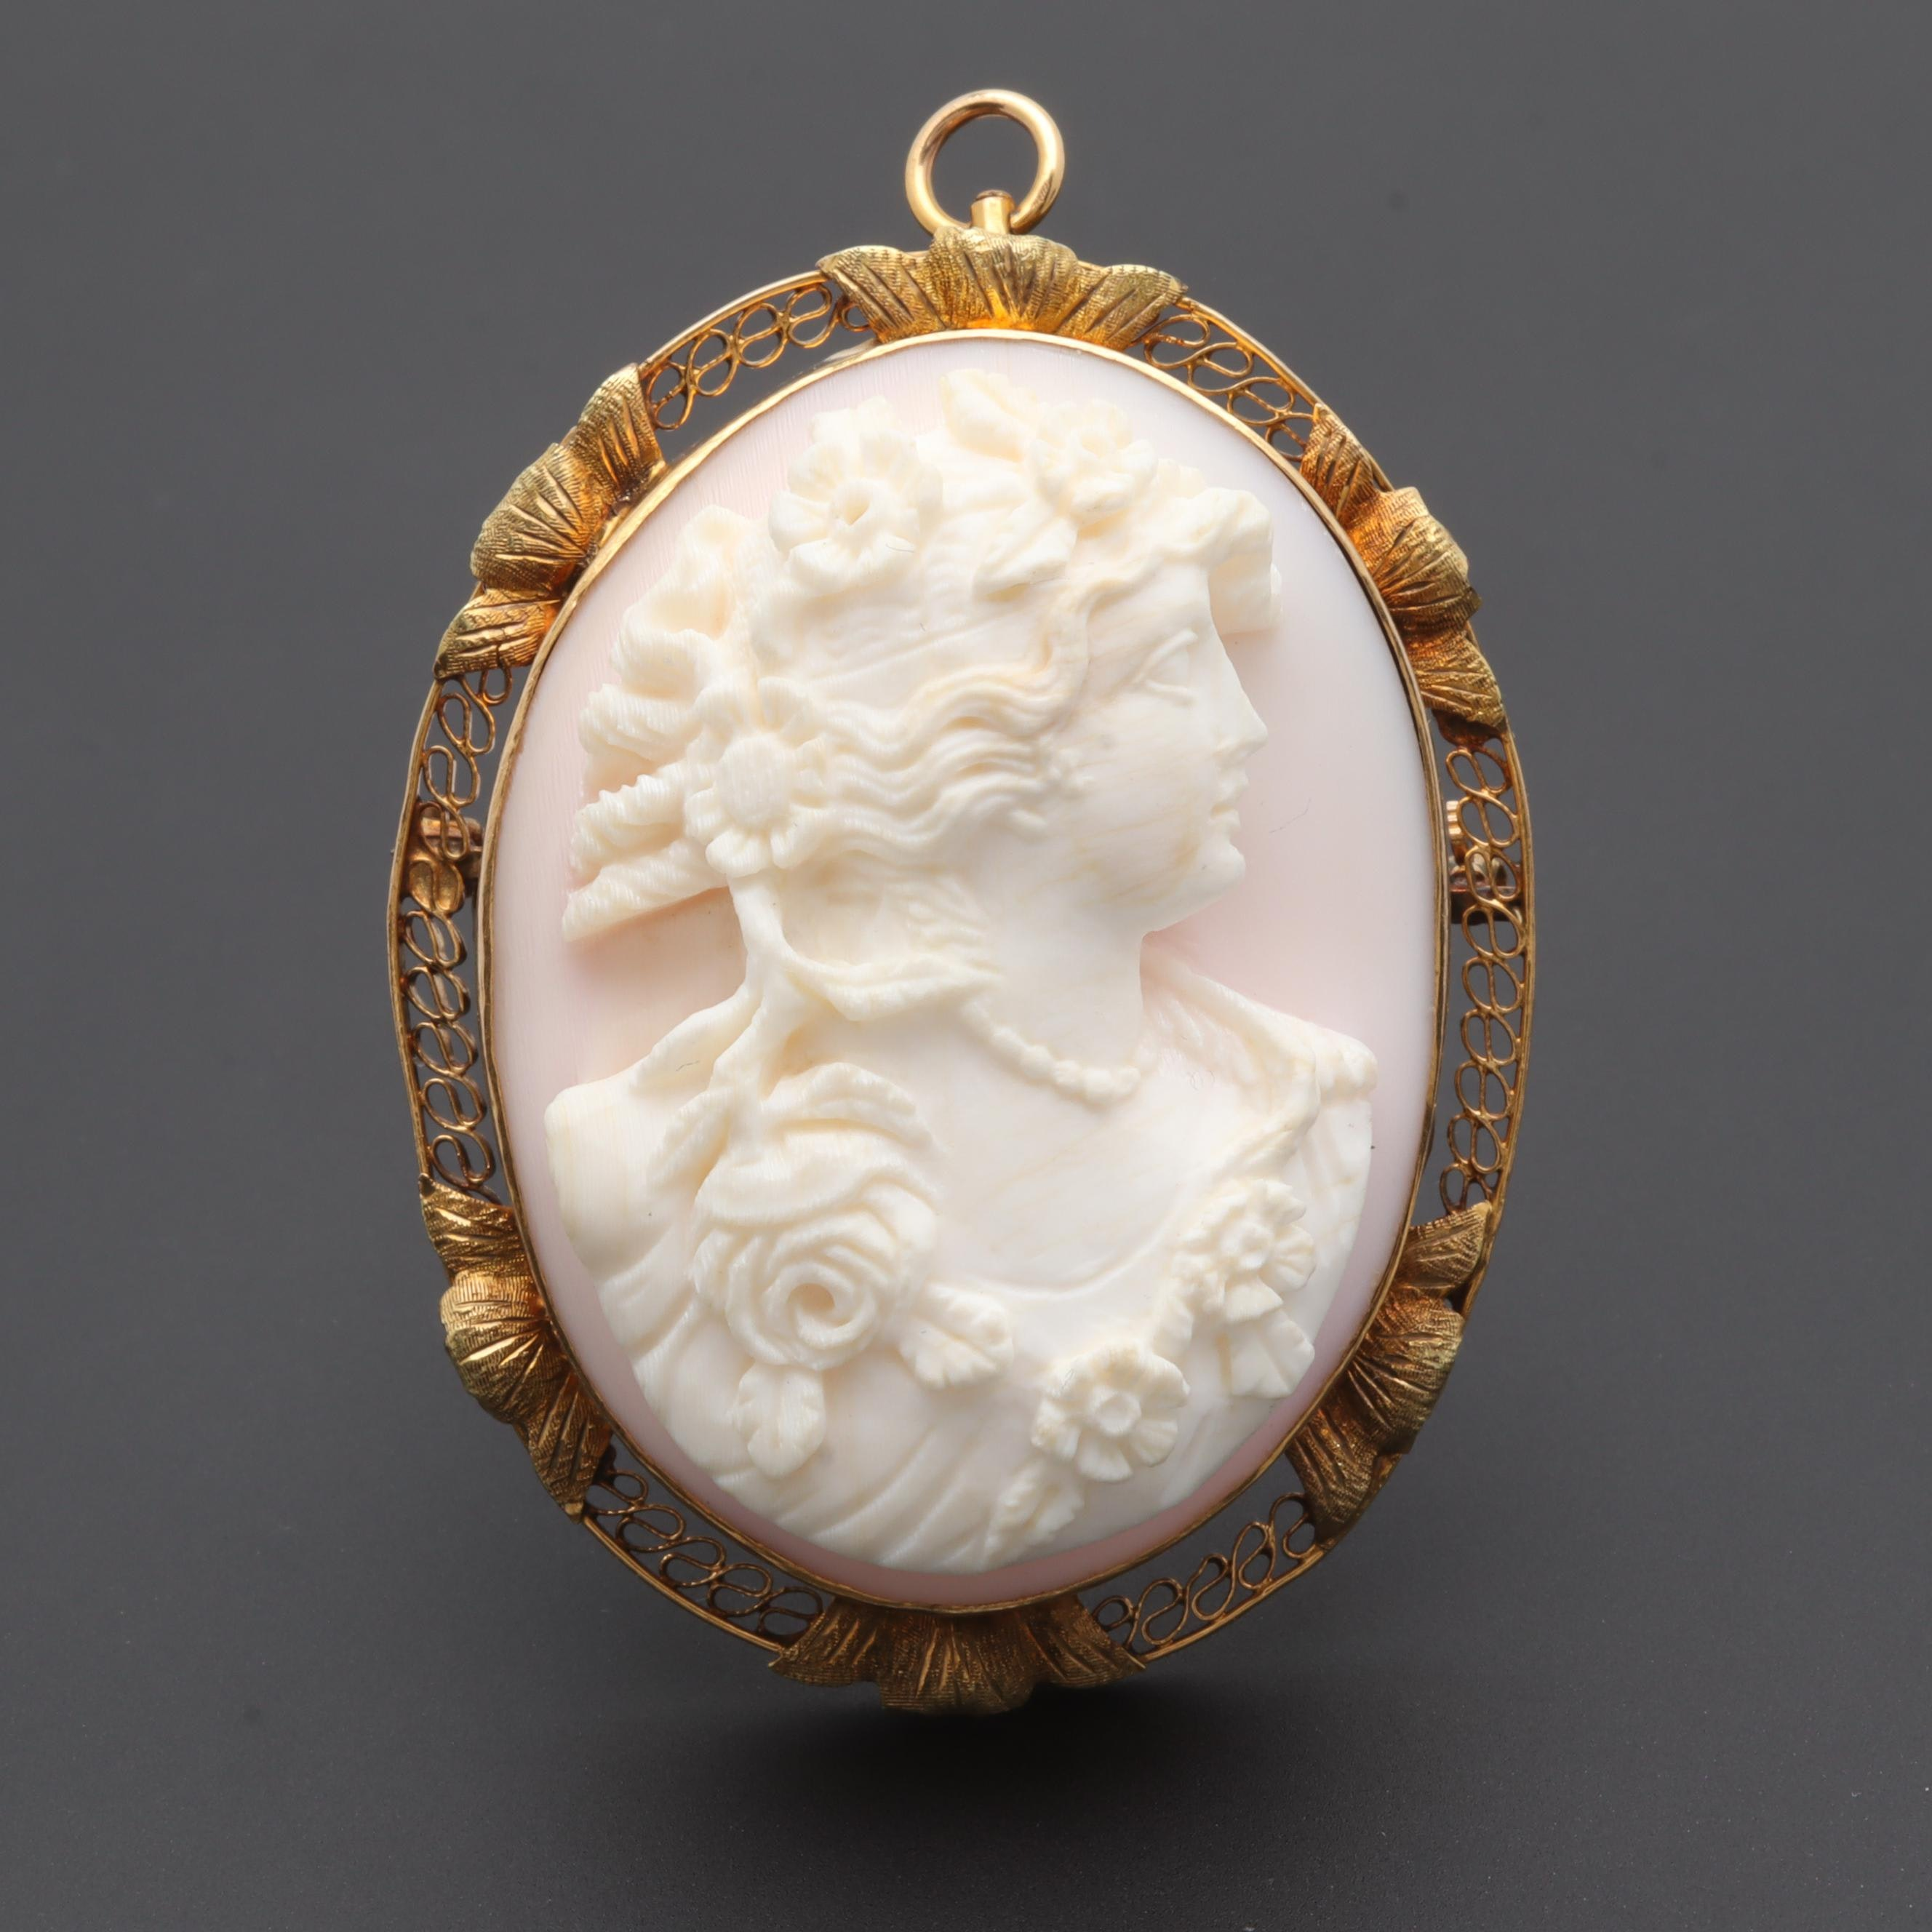 Circa Early 1900's 10K Yellow Gold Conch Shell Cameo Converter Brooch of Flora